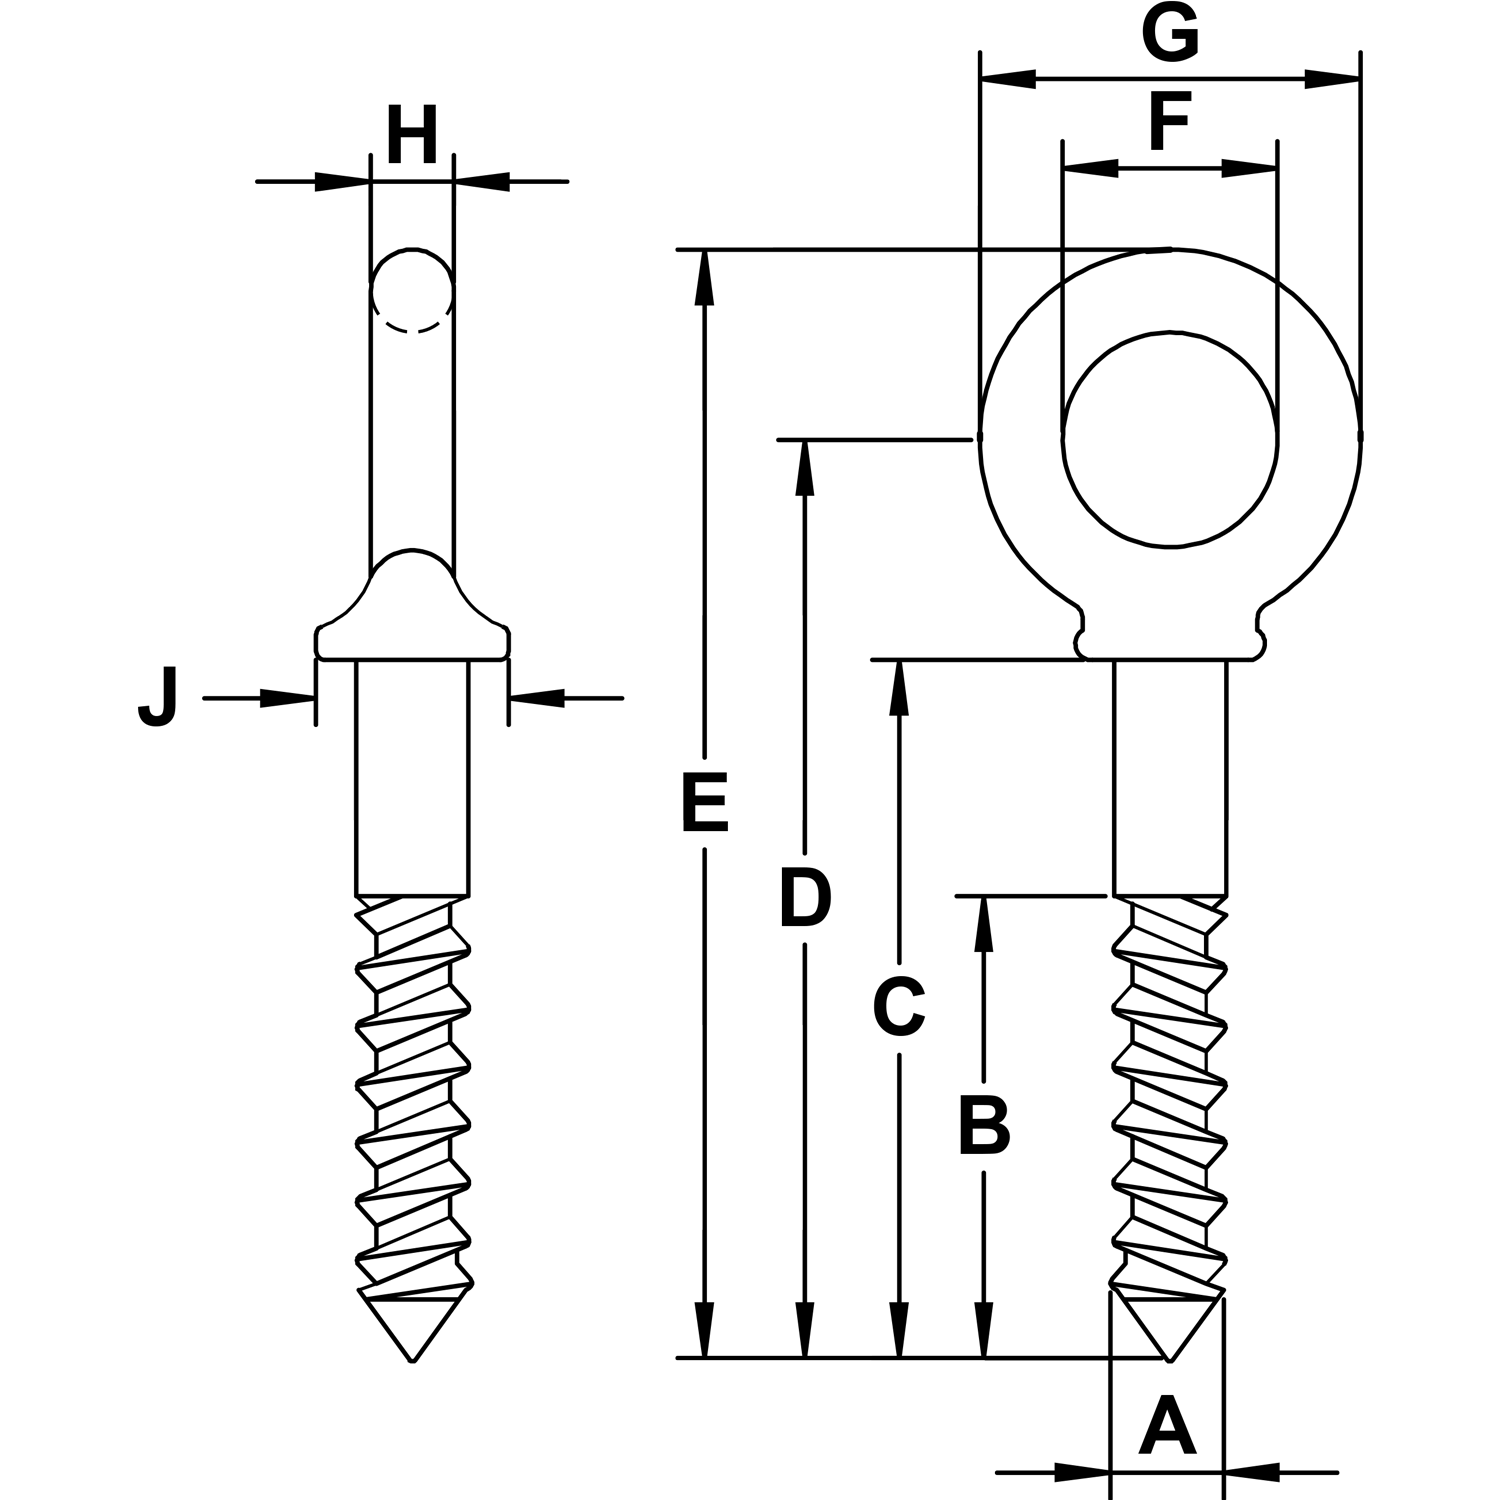 three-quarters-inch-screw-eye-bolt-specification-diagram